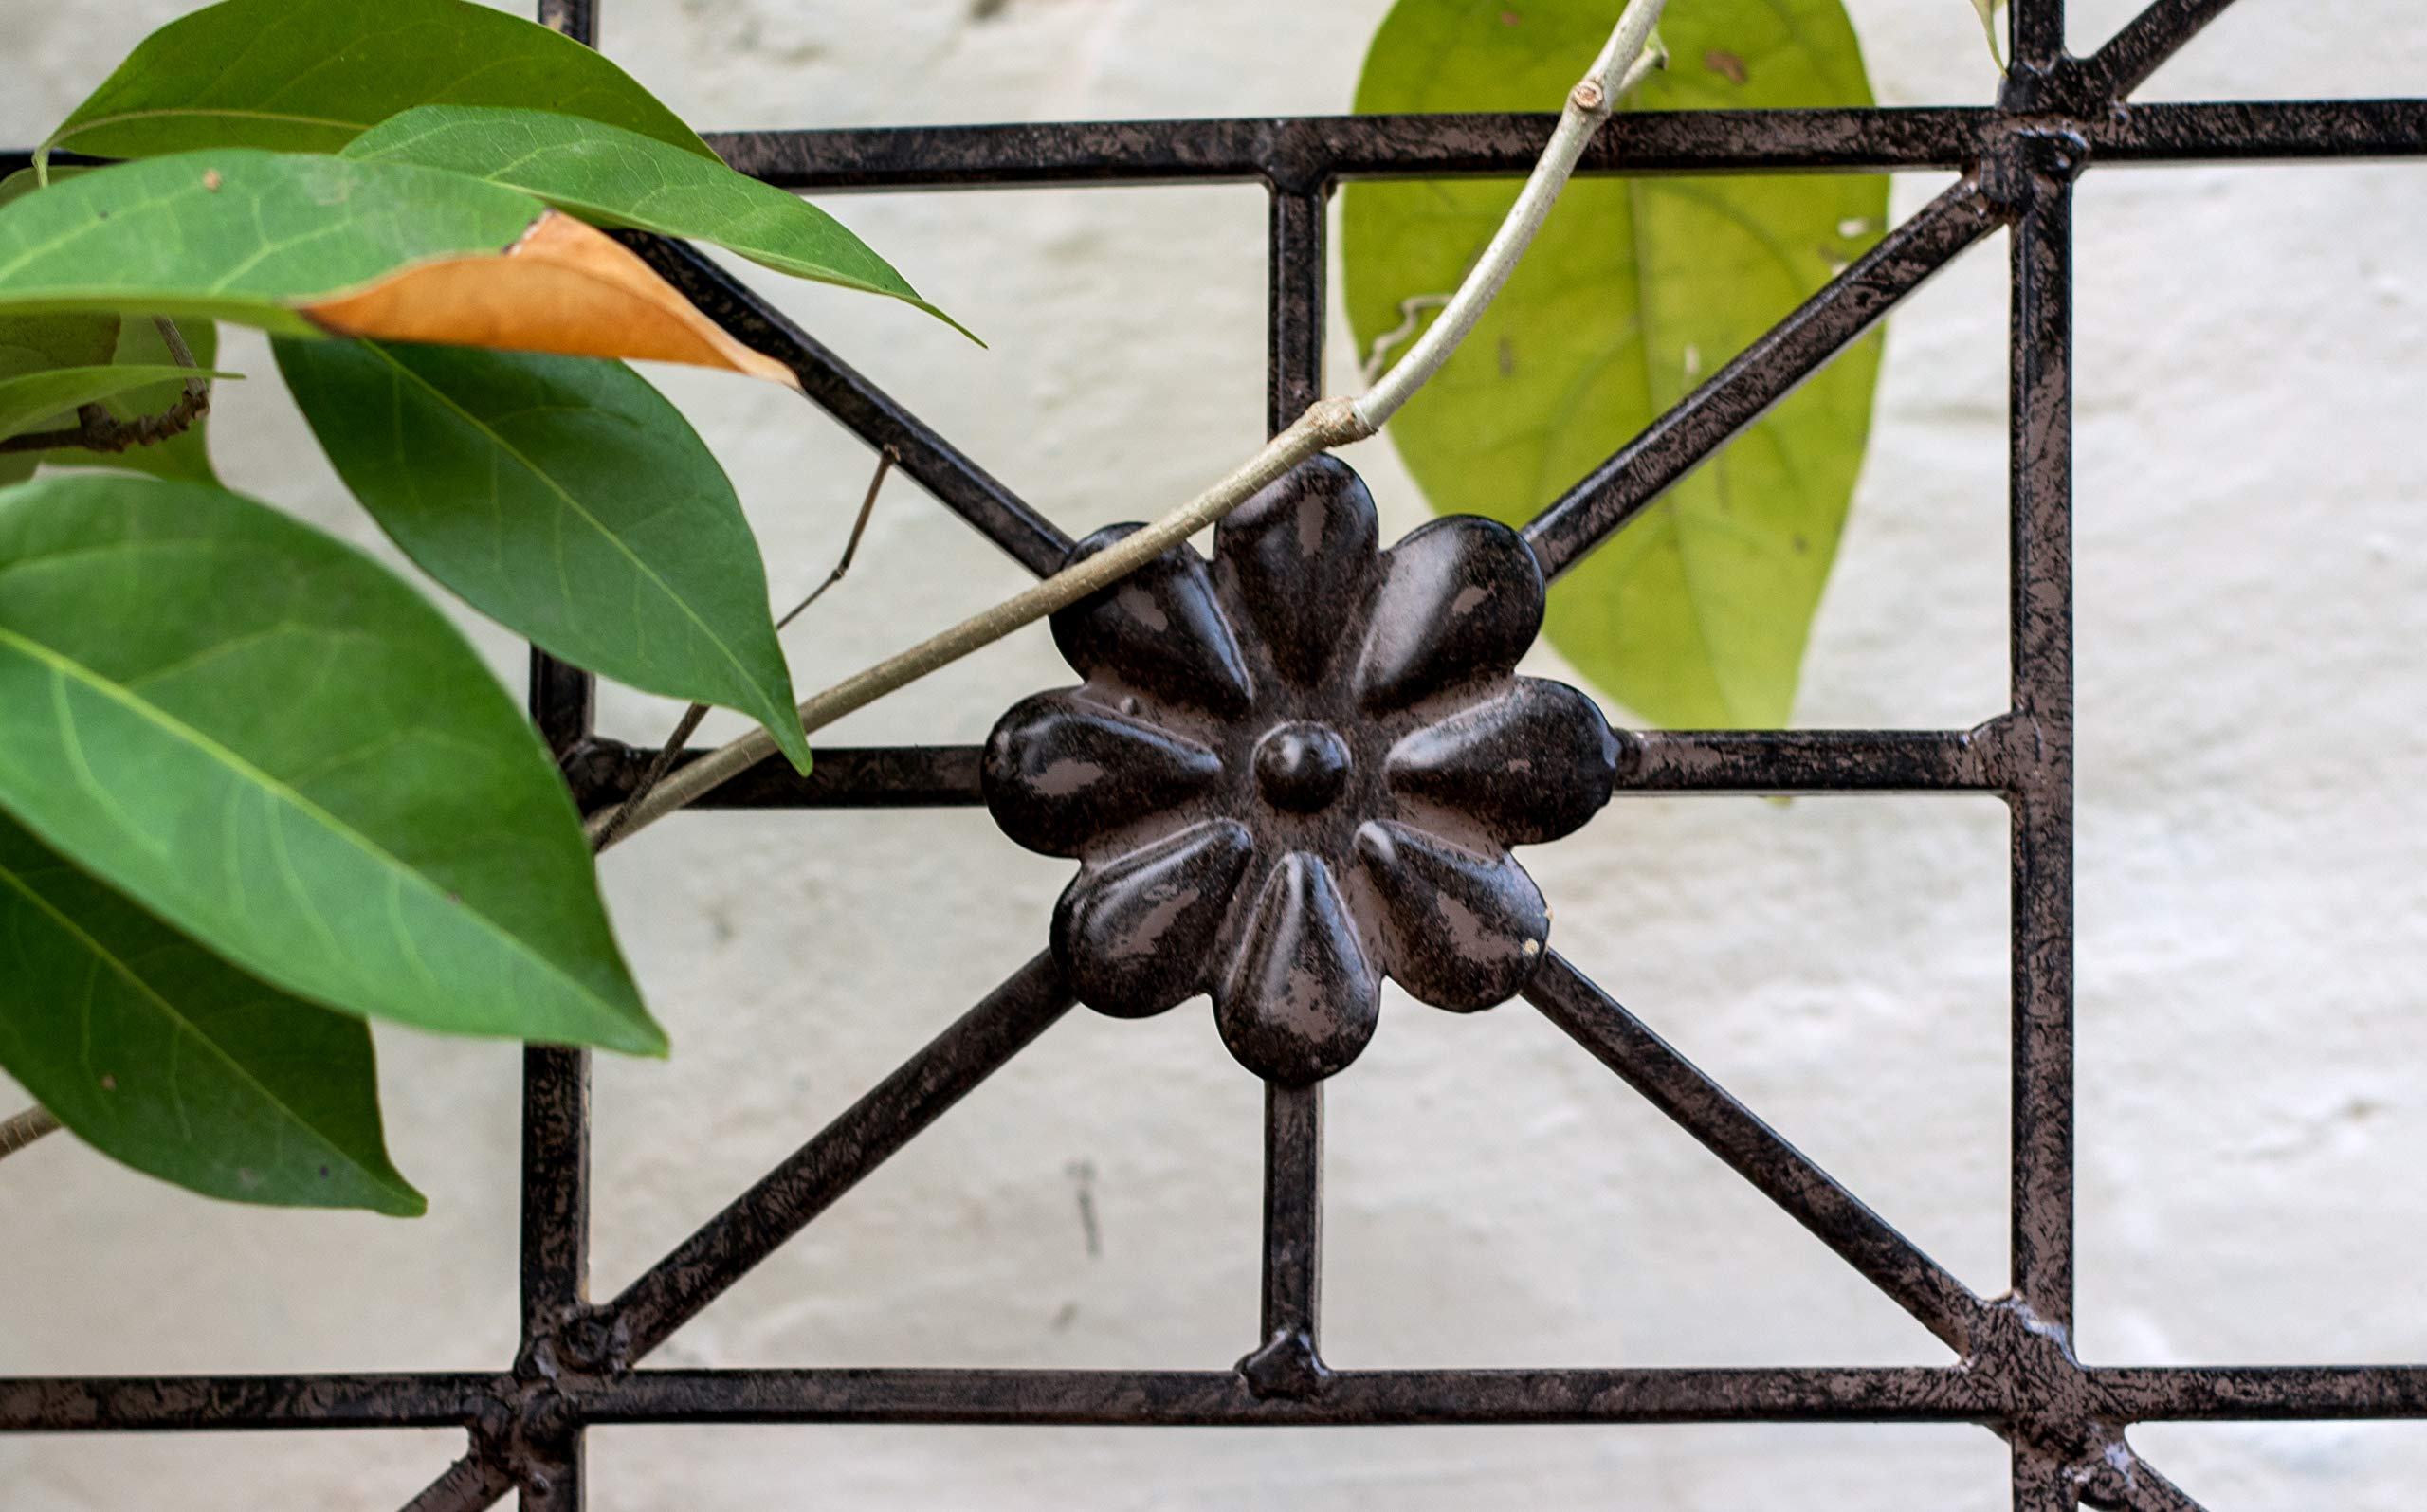 H Potter 5.5 Foot Tall Garden Flower Trellis Wrought Iron Heavy Scroll Metal Decoration Lawn, Patio & Wall Decor Screen for Rose, Clematis, Ivy Patio Deck Wall Art by H Potter (Image #5)